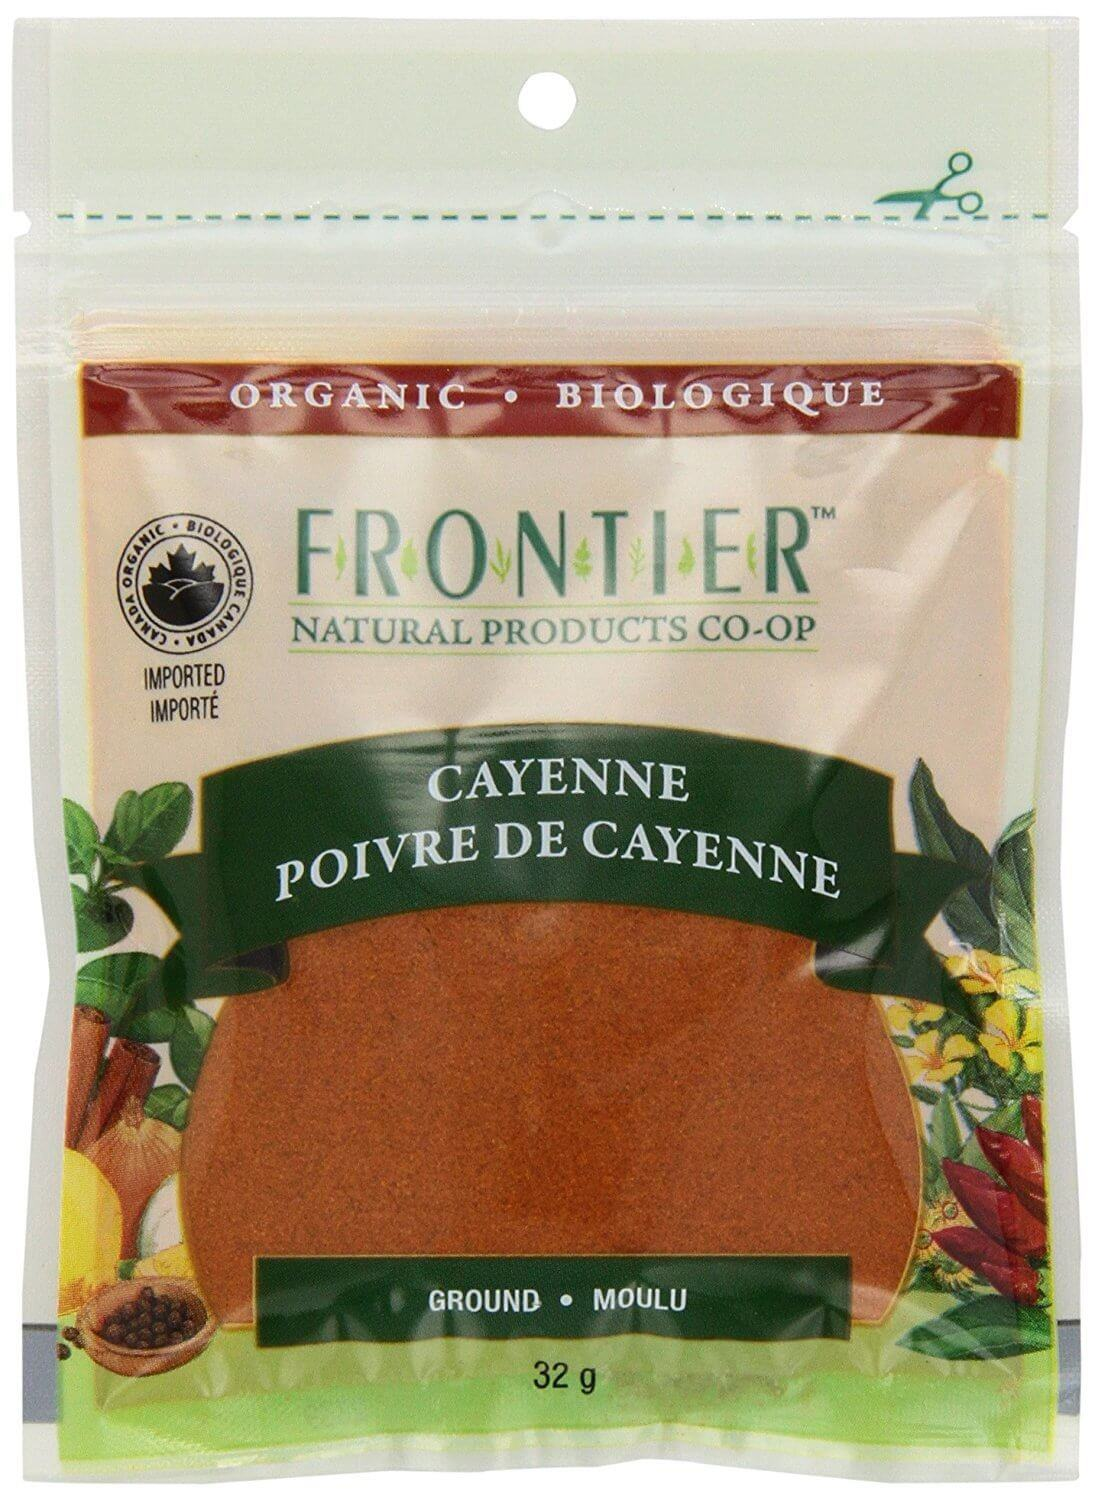 Food & Drink - Frontier Co-Op - Ground Cayenne, 32g